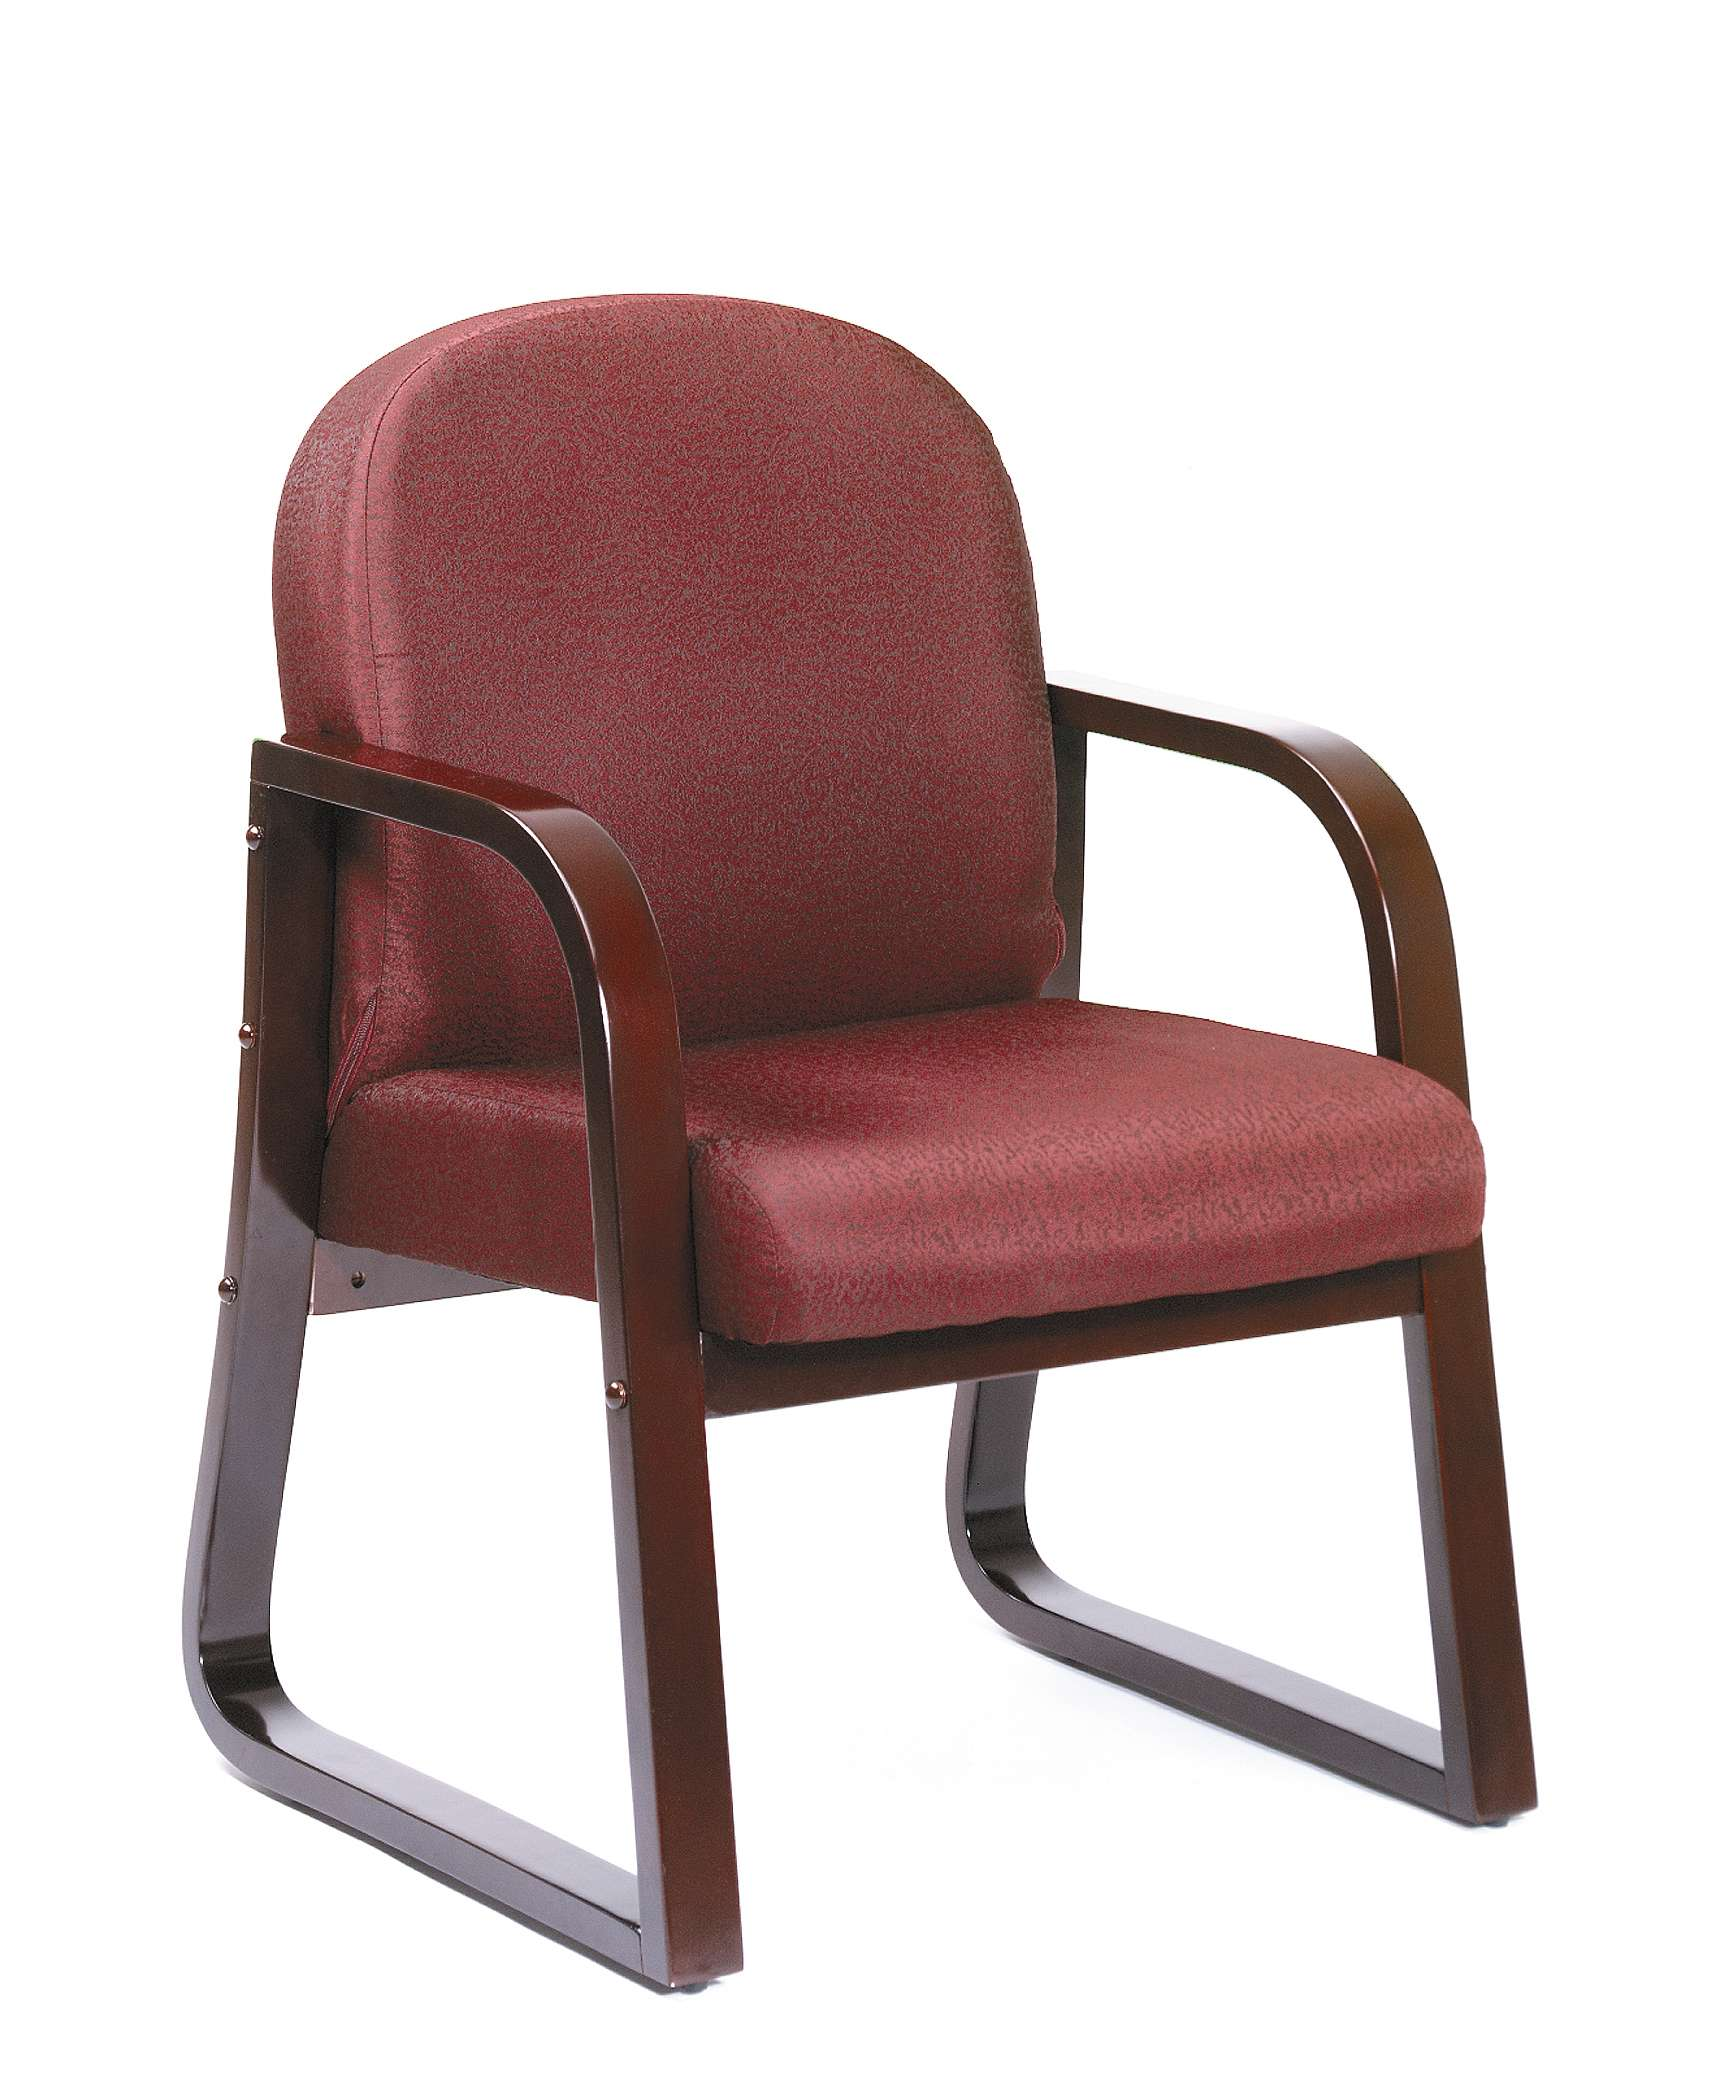 Merveilleux Boss Office Products B9570 BY. Burgundy Side Chair In Mahogany Finish